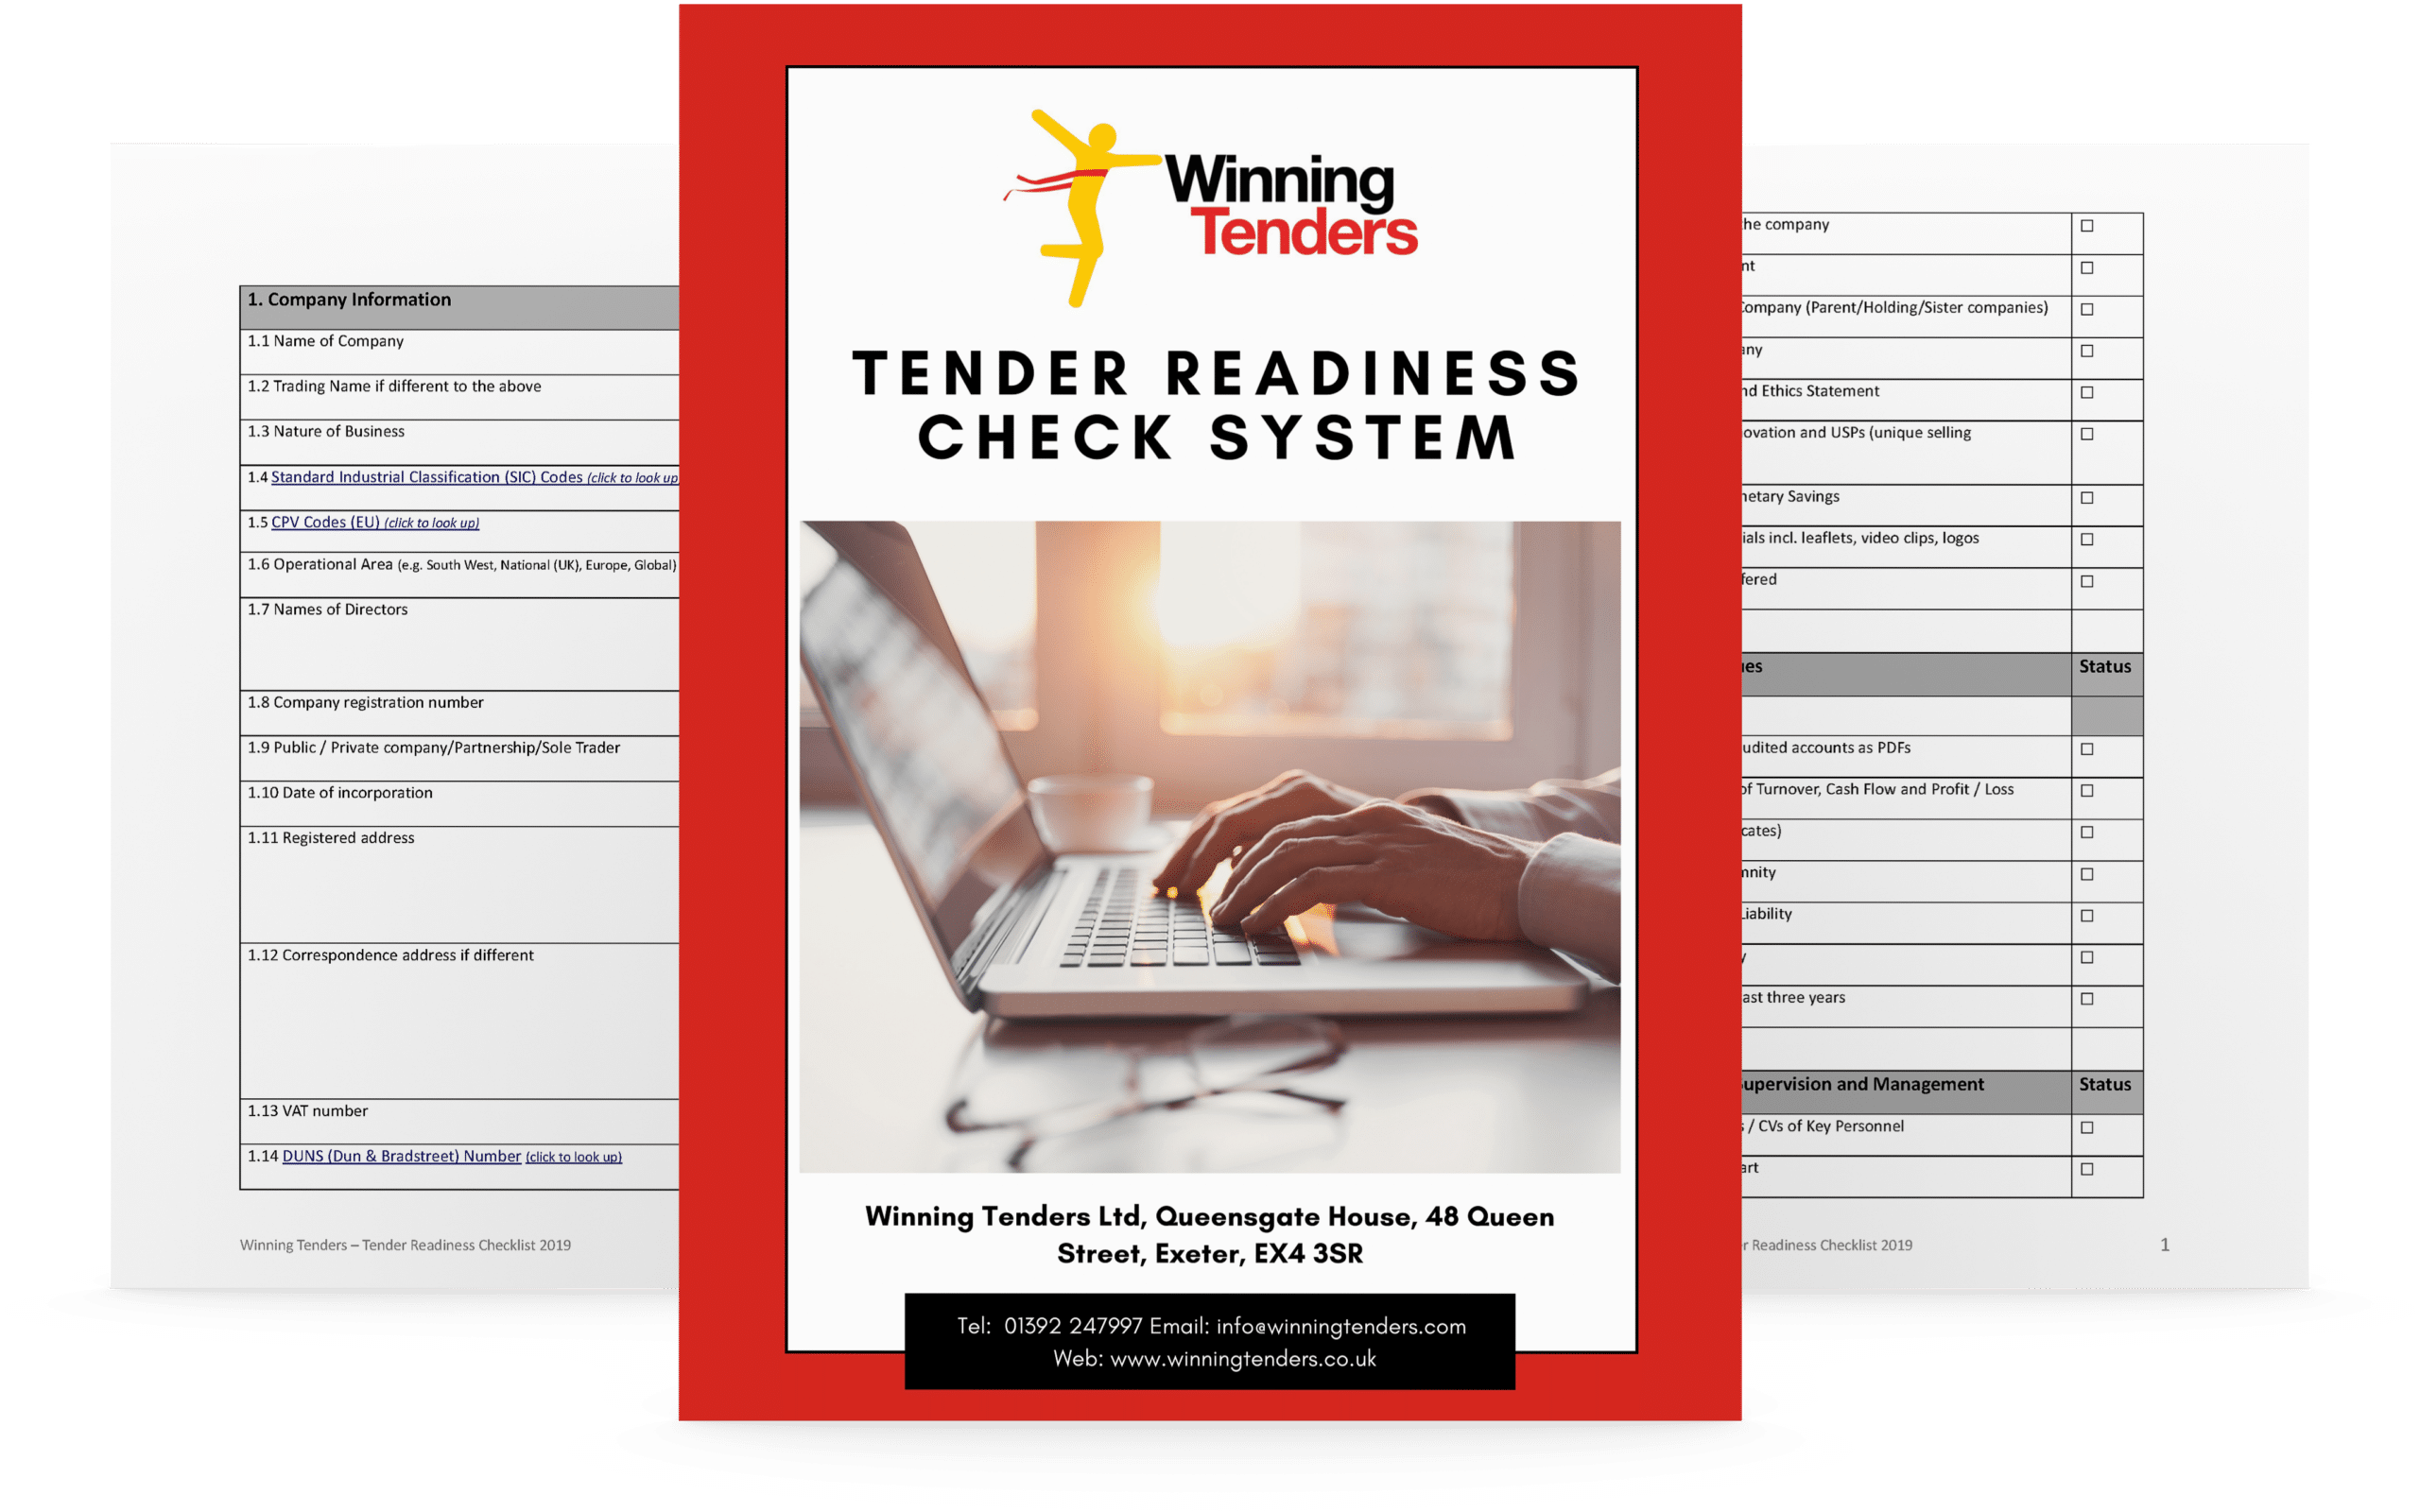 Download the Winning Tenders Tender Readiness Check starter pack